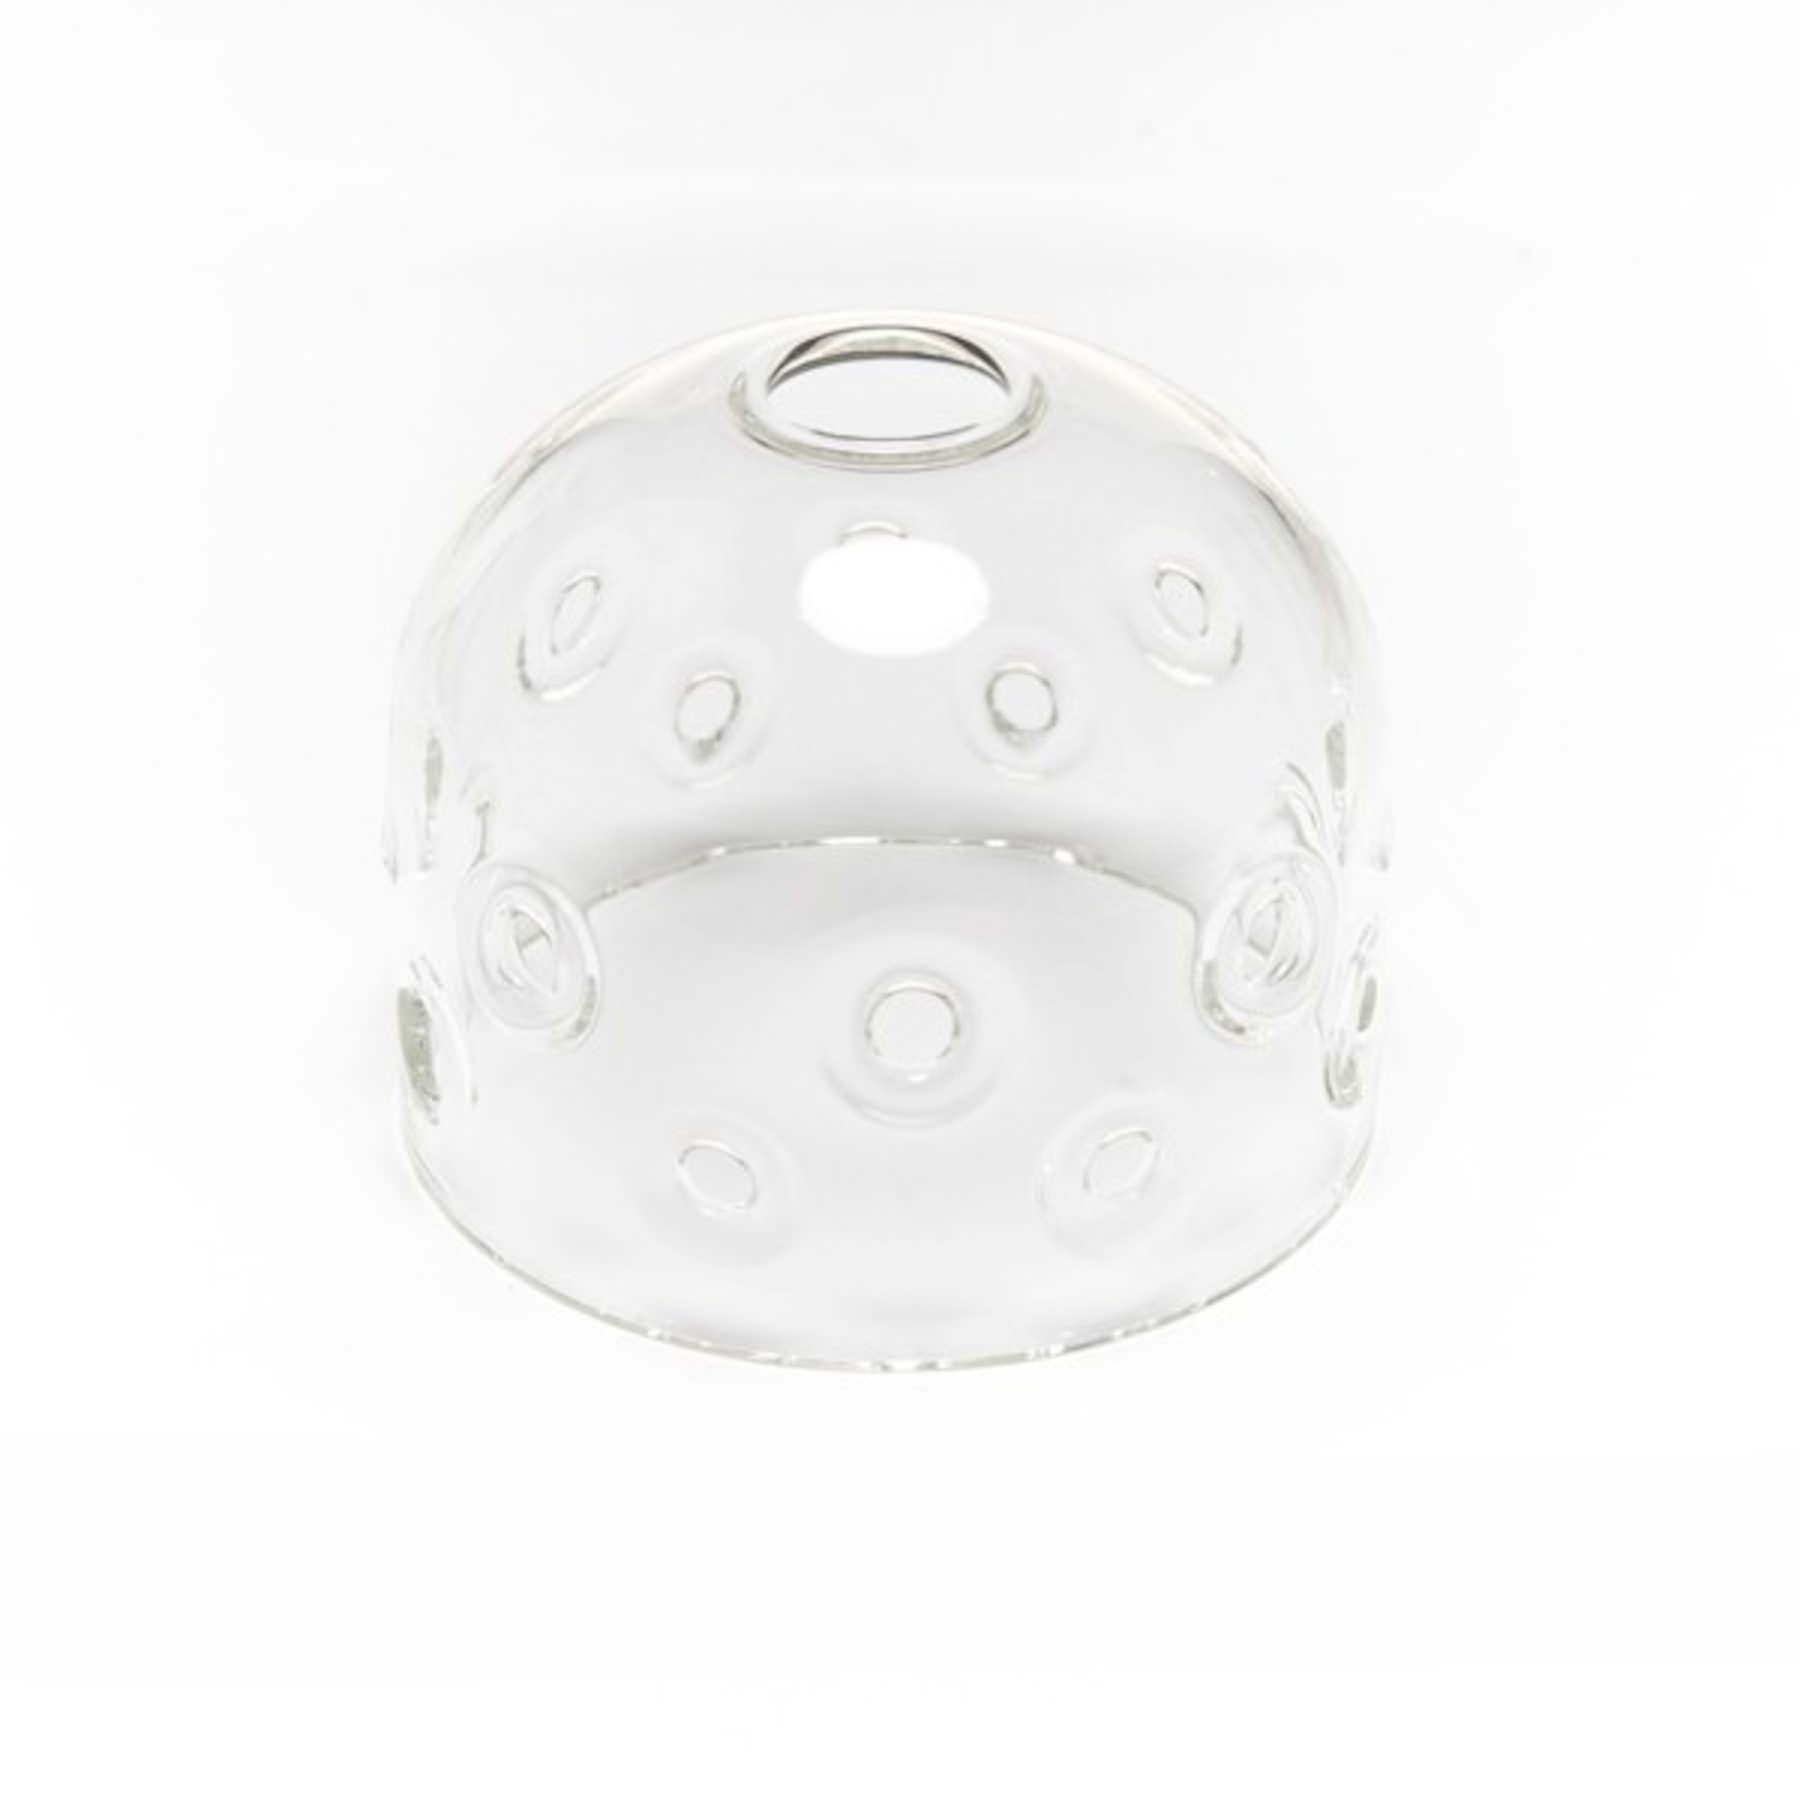 Bowens Clear Cover Dome